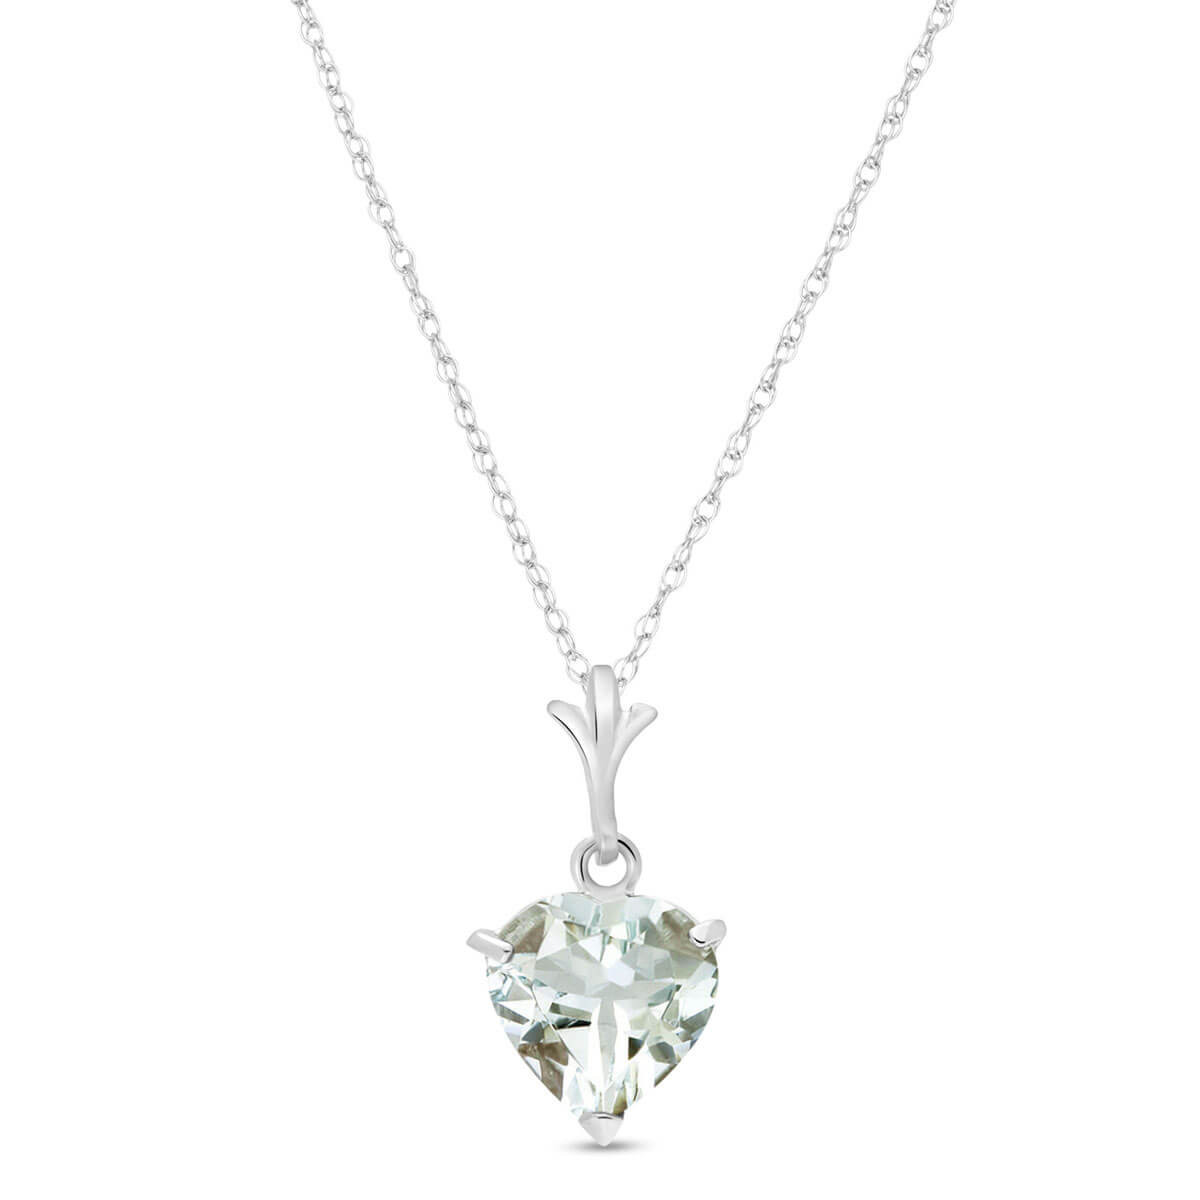 Argent Sterling Aigue-Marine 7mm Coeur Solitaire Collier